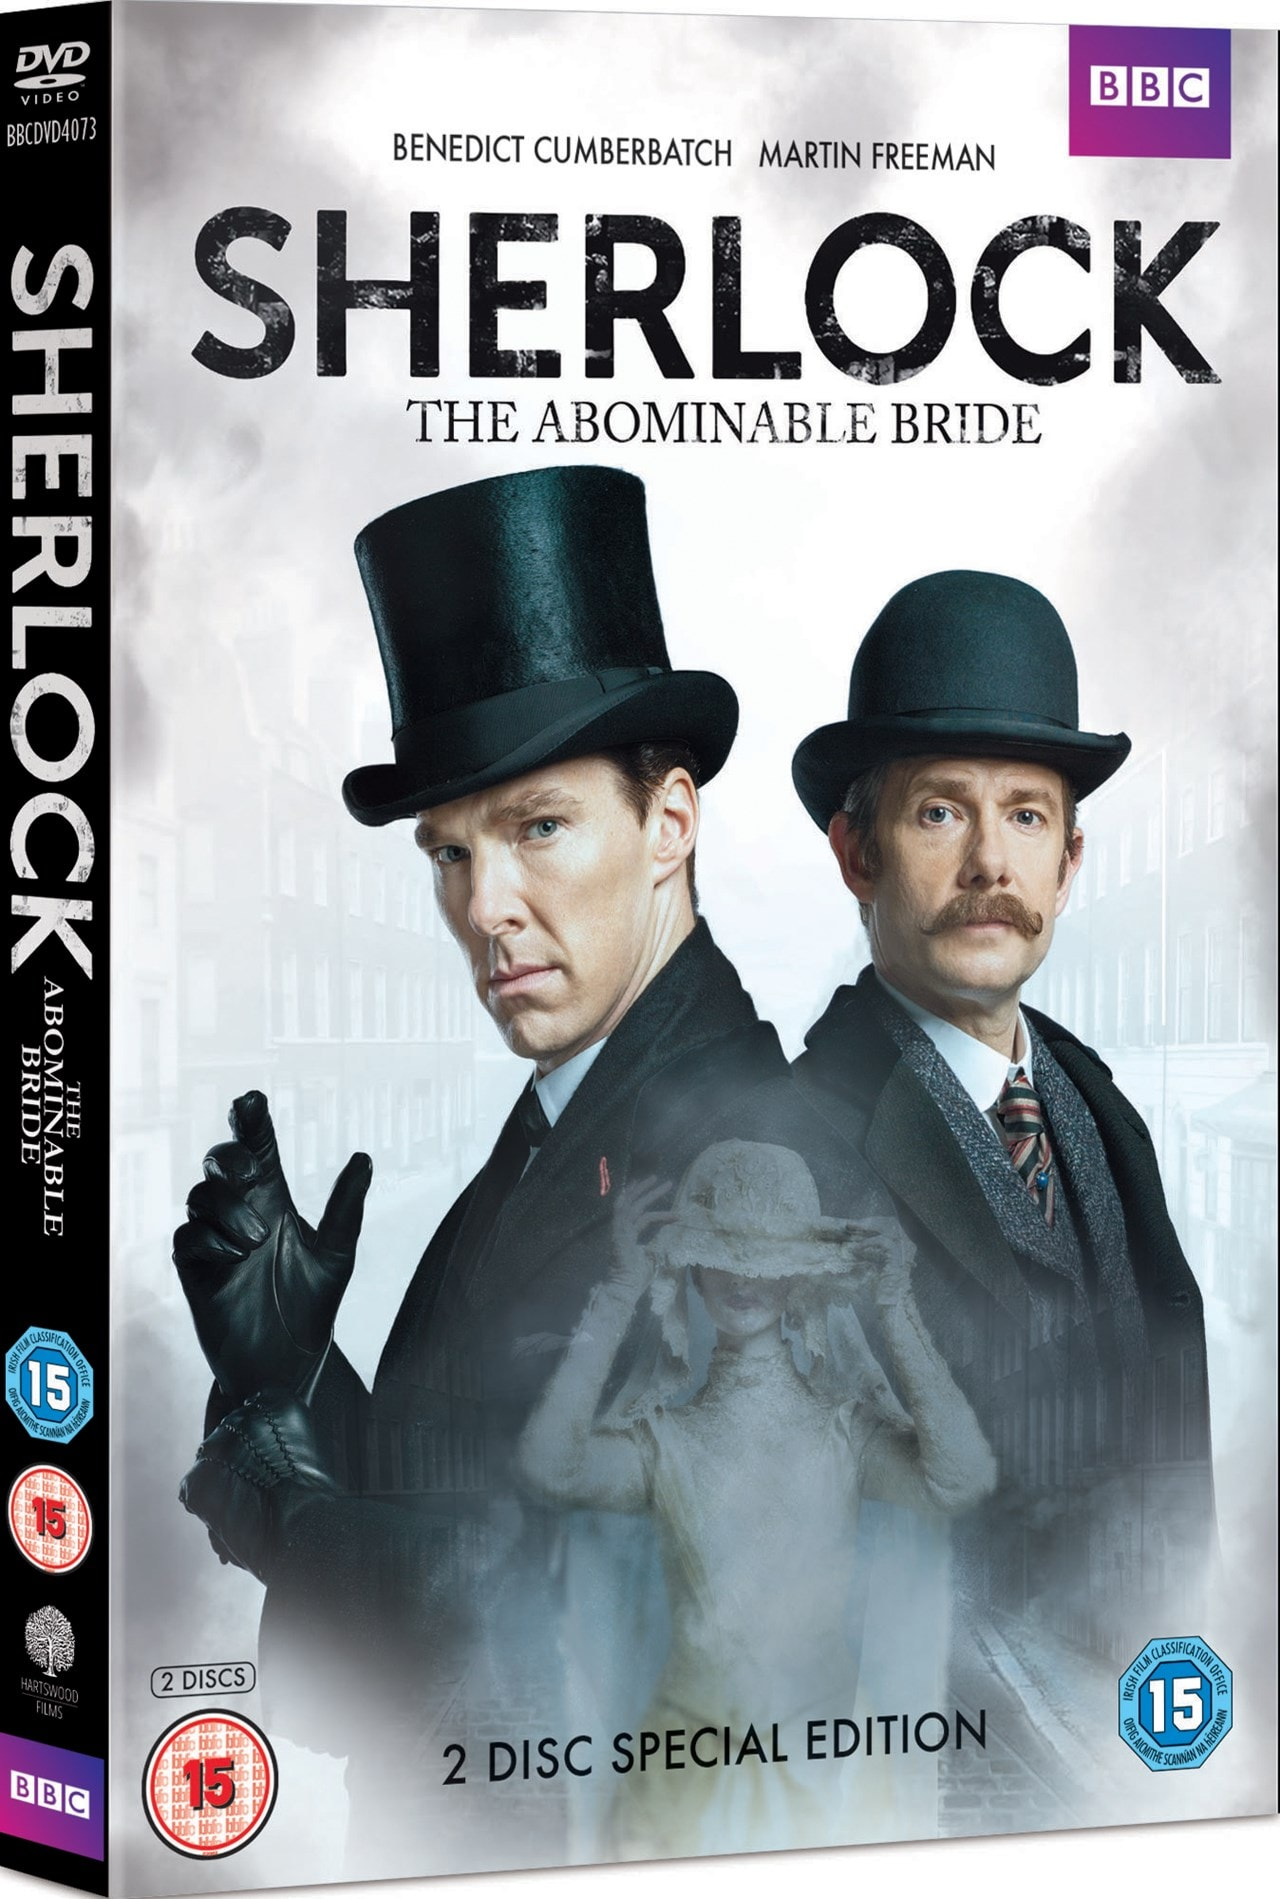 Sherlock: The Abominable Bride - 2